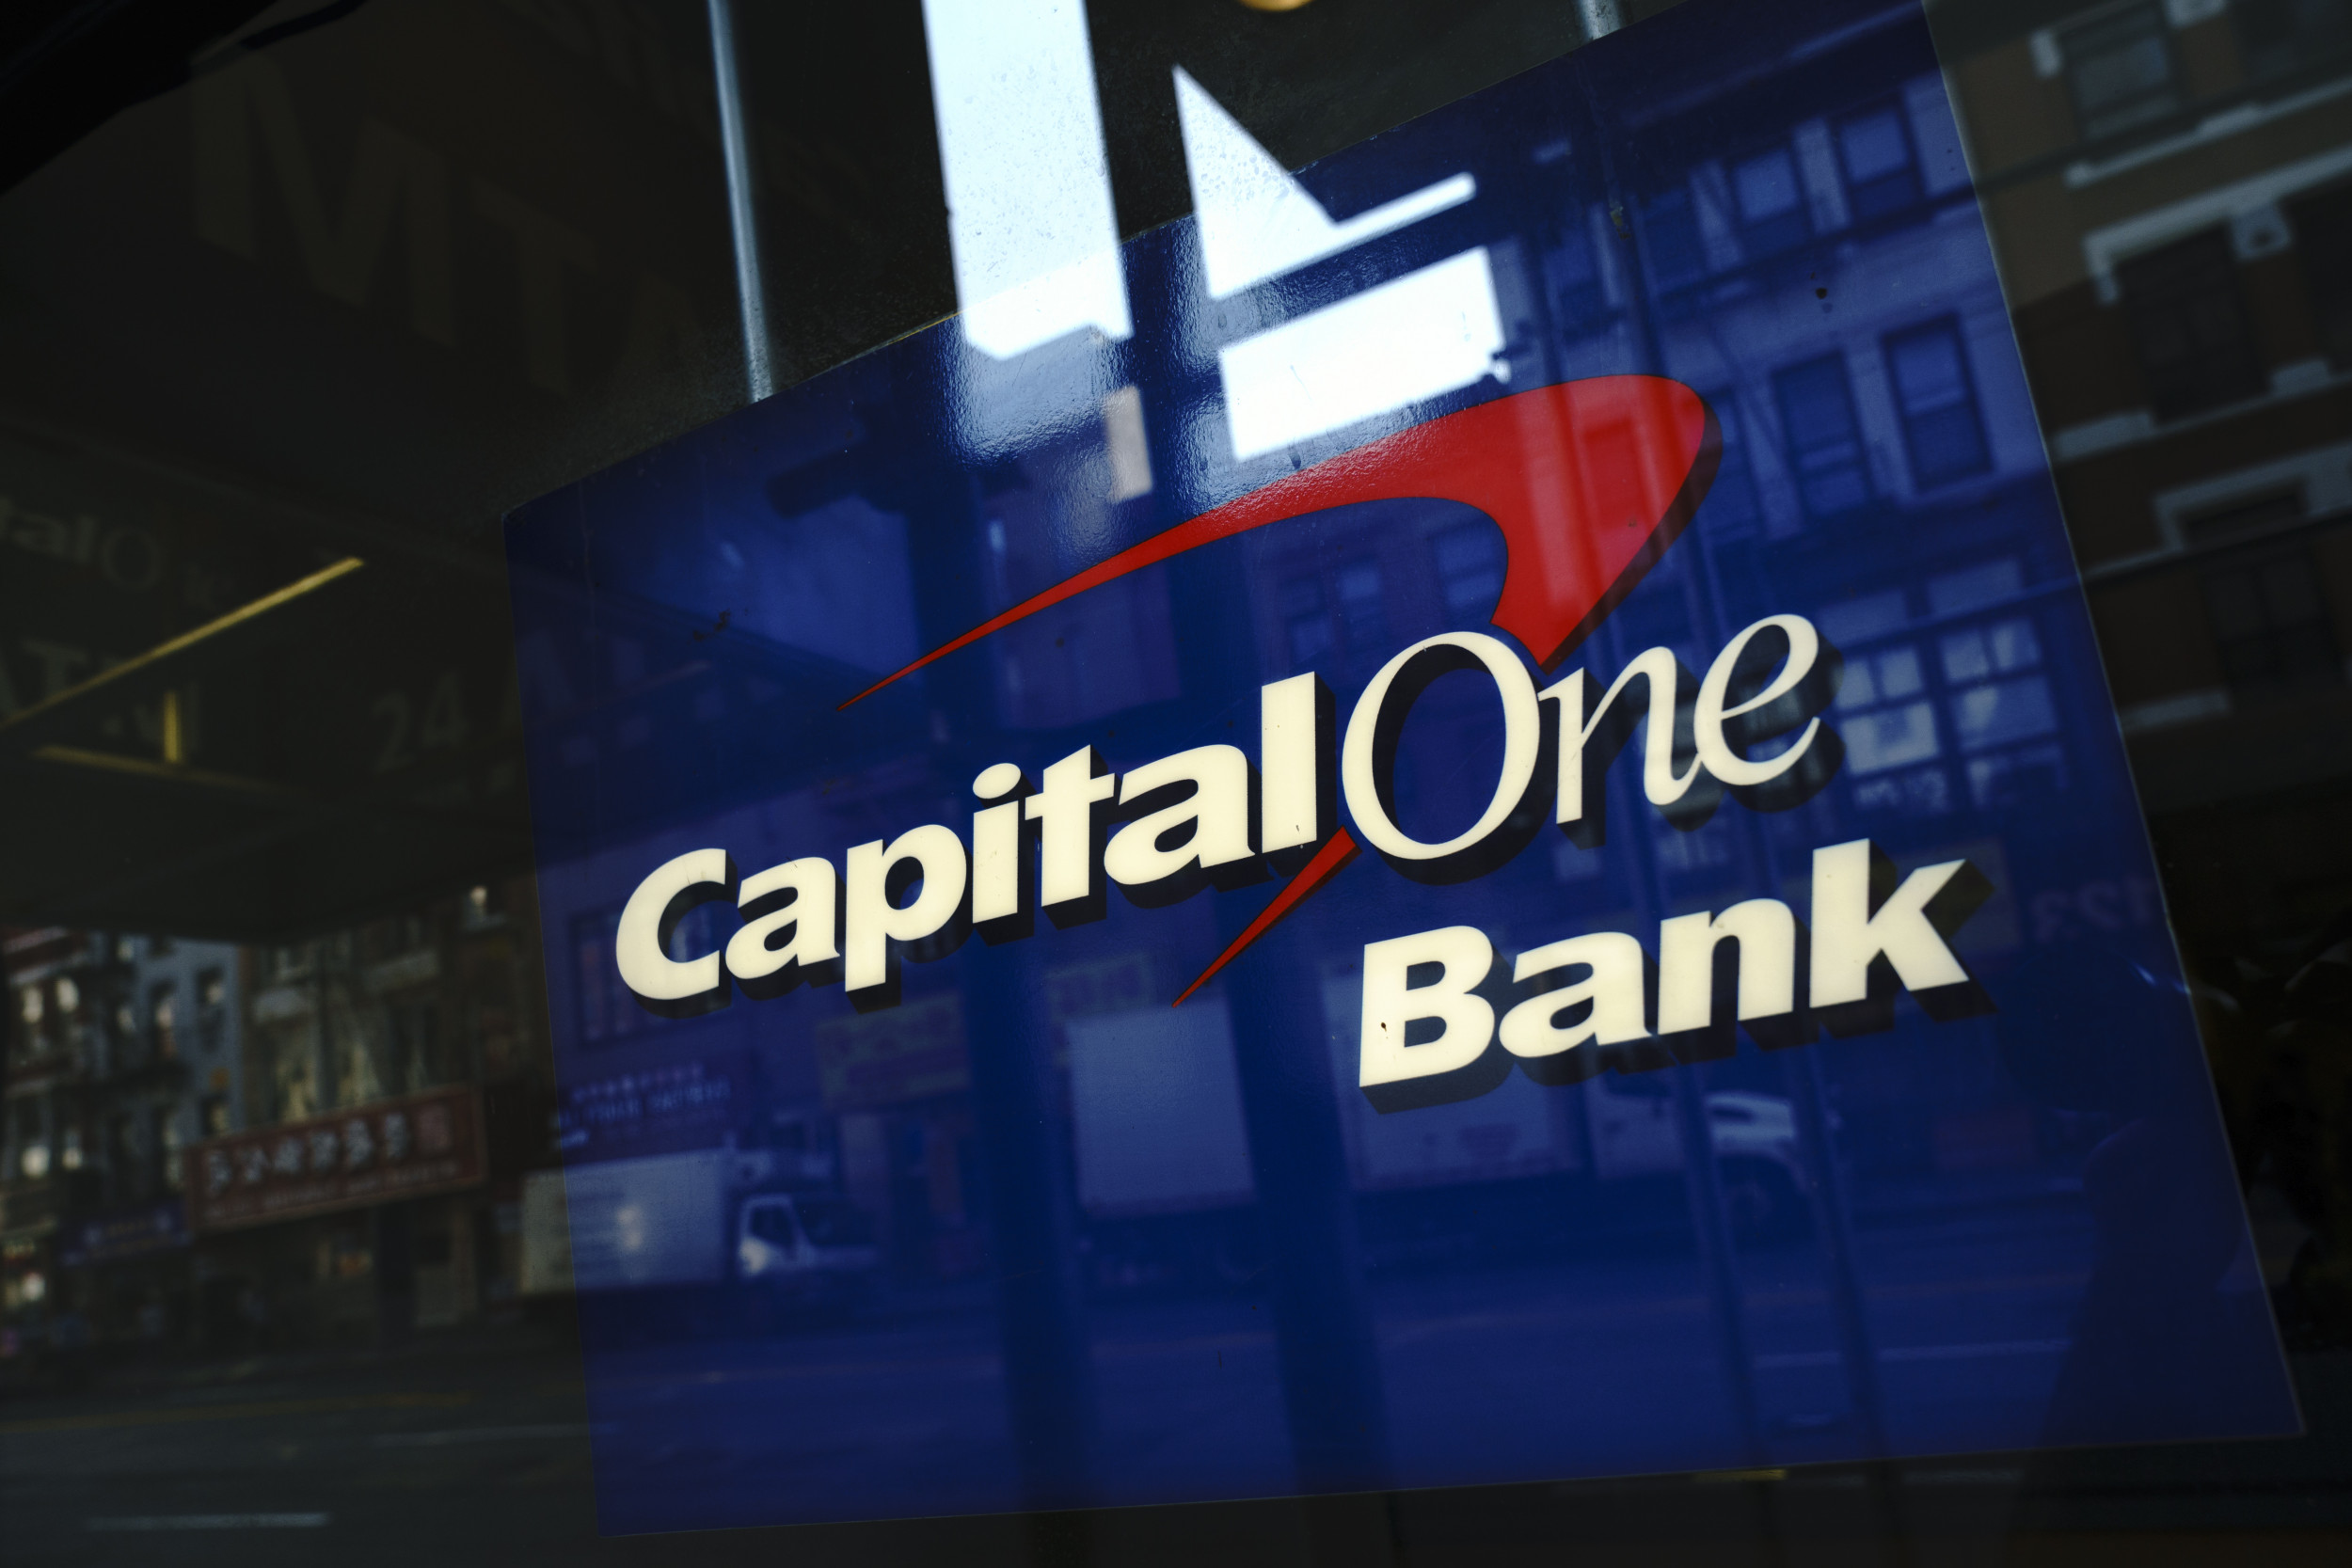 5 lessons to learn from the Capital One data breach